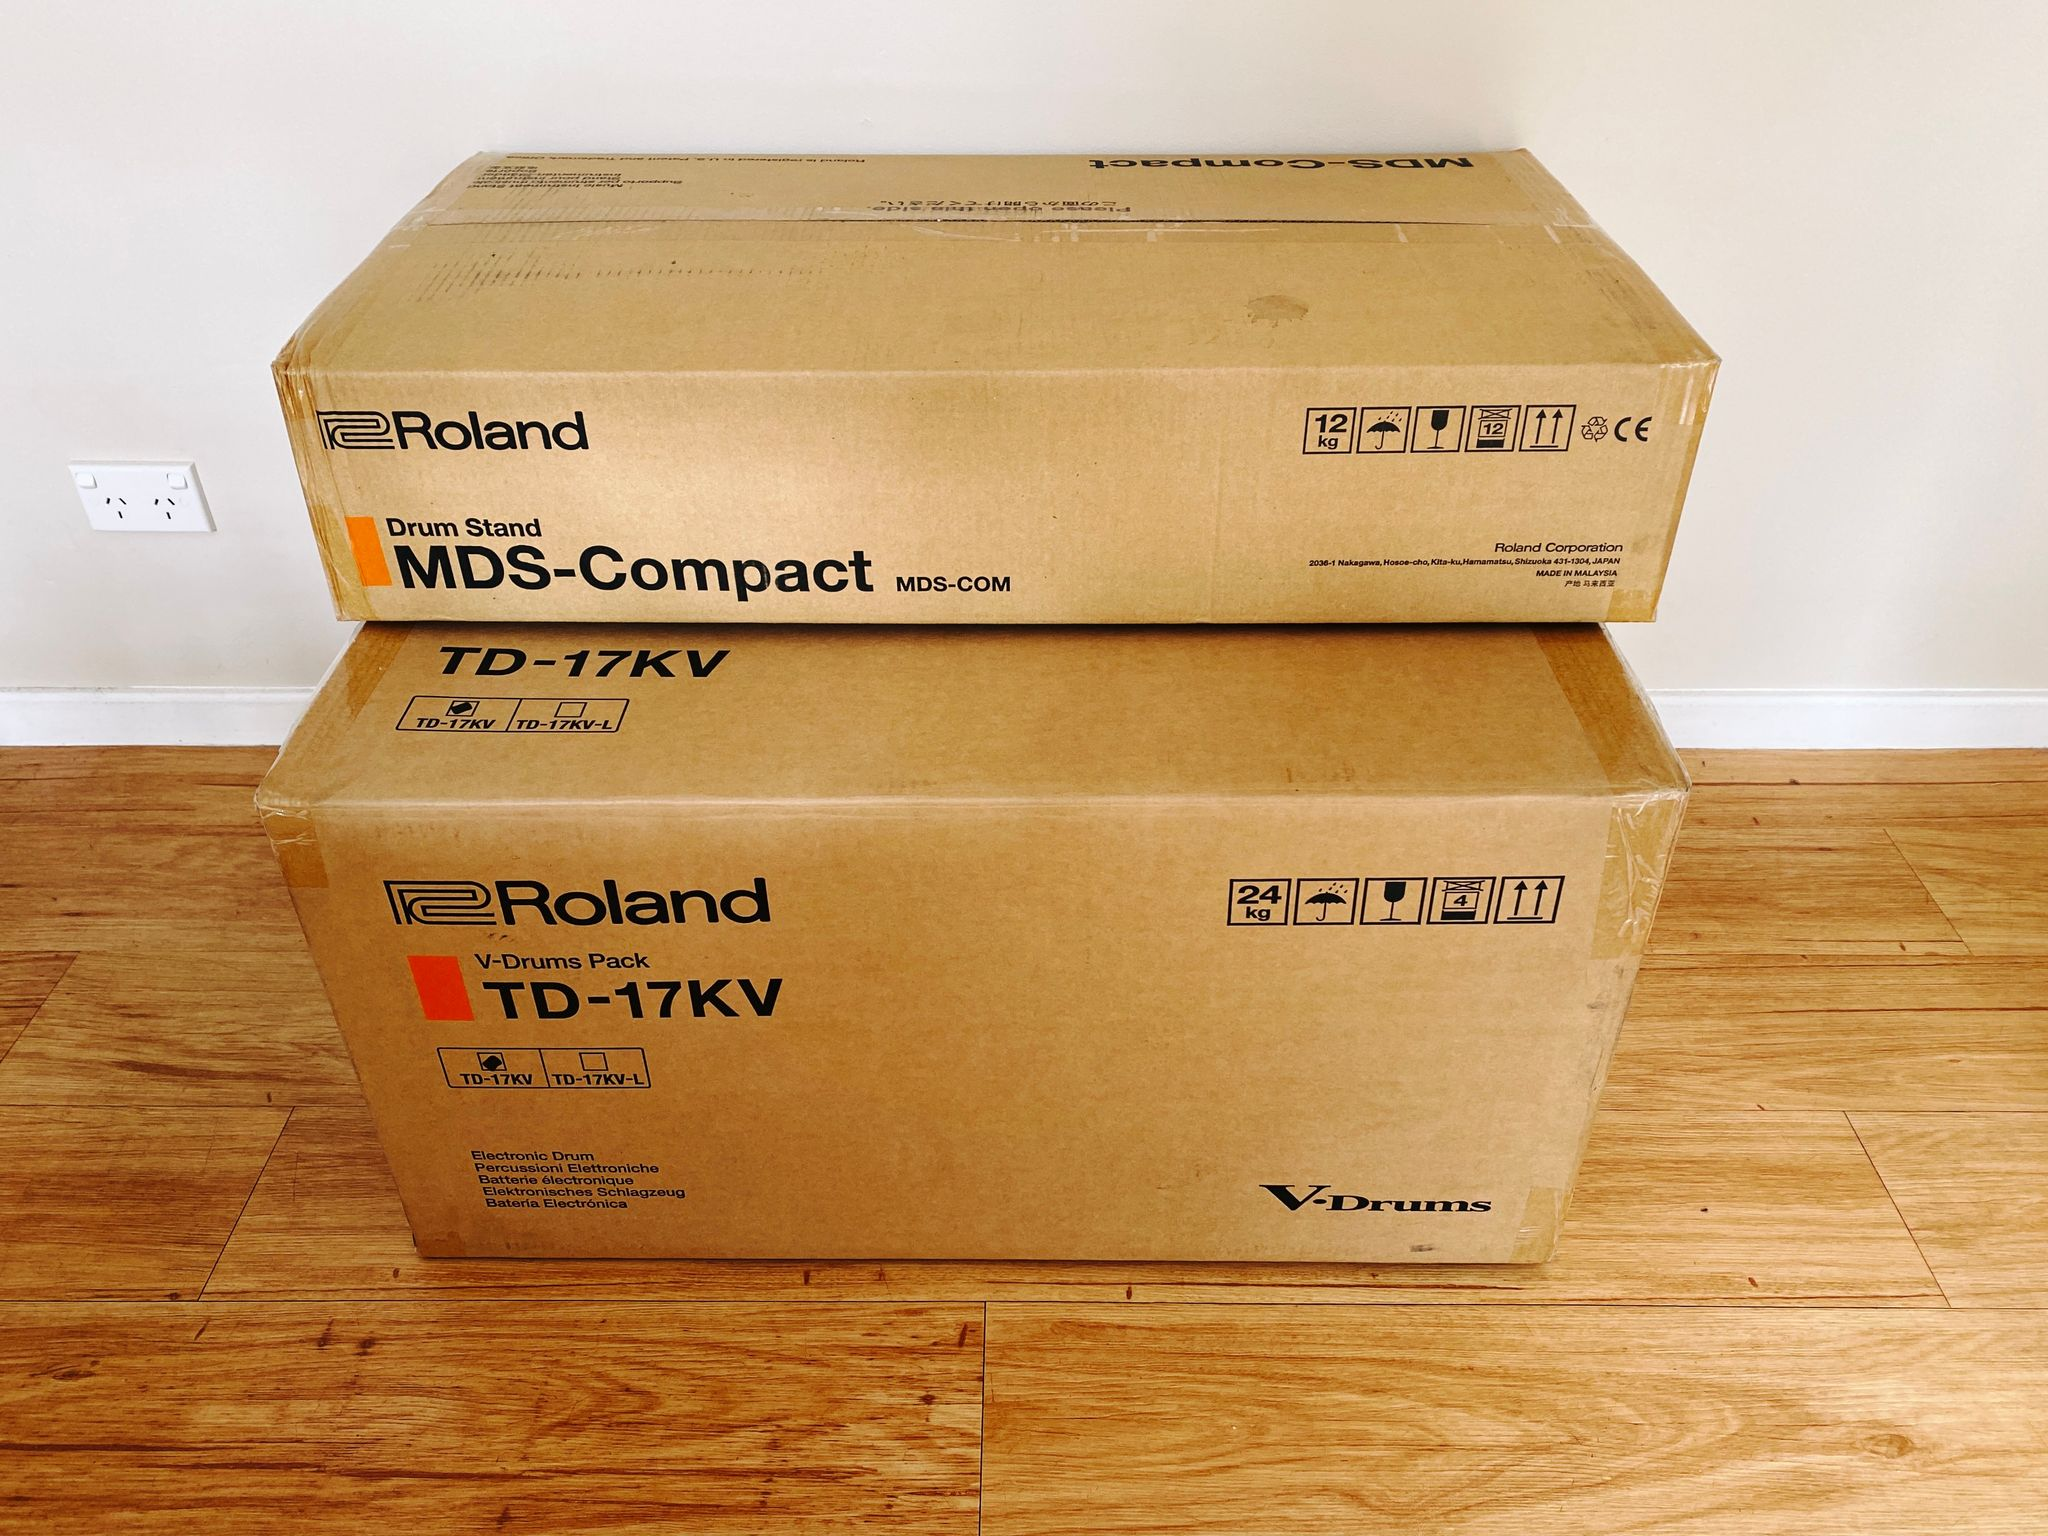 """A photo of two large cardboard boxes, one labelled """"Roland TD-17KV V-Drums Pack"""" and the other """"MDS-Compact Drum Stand""""."""